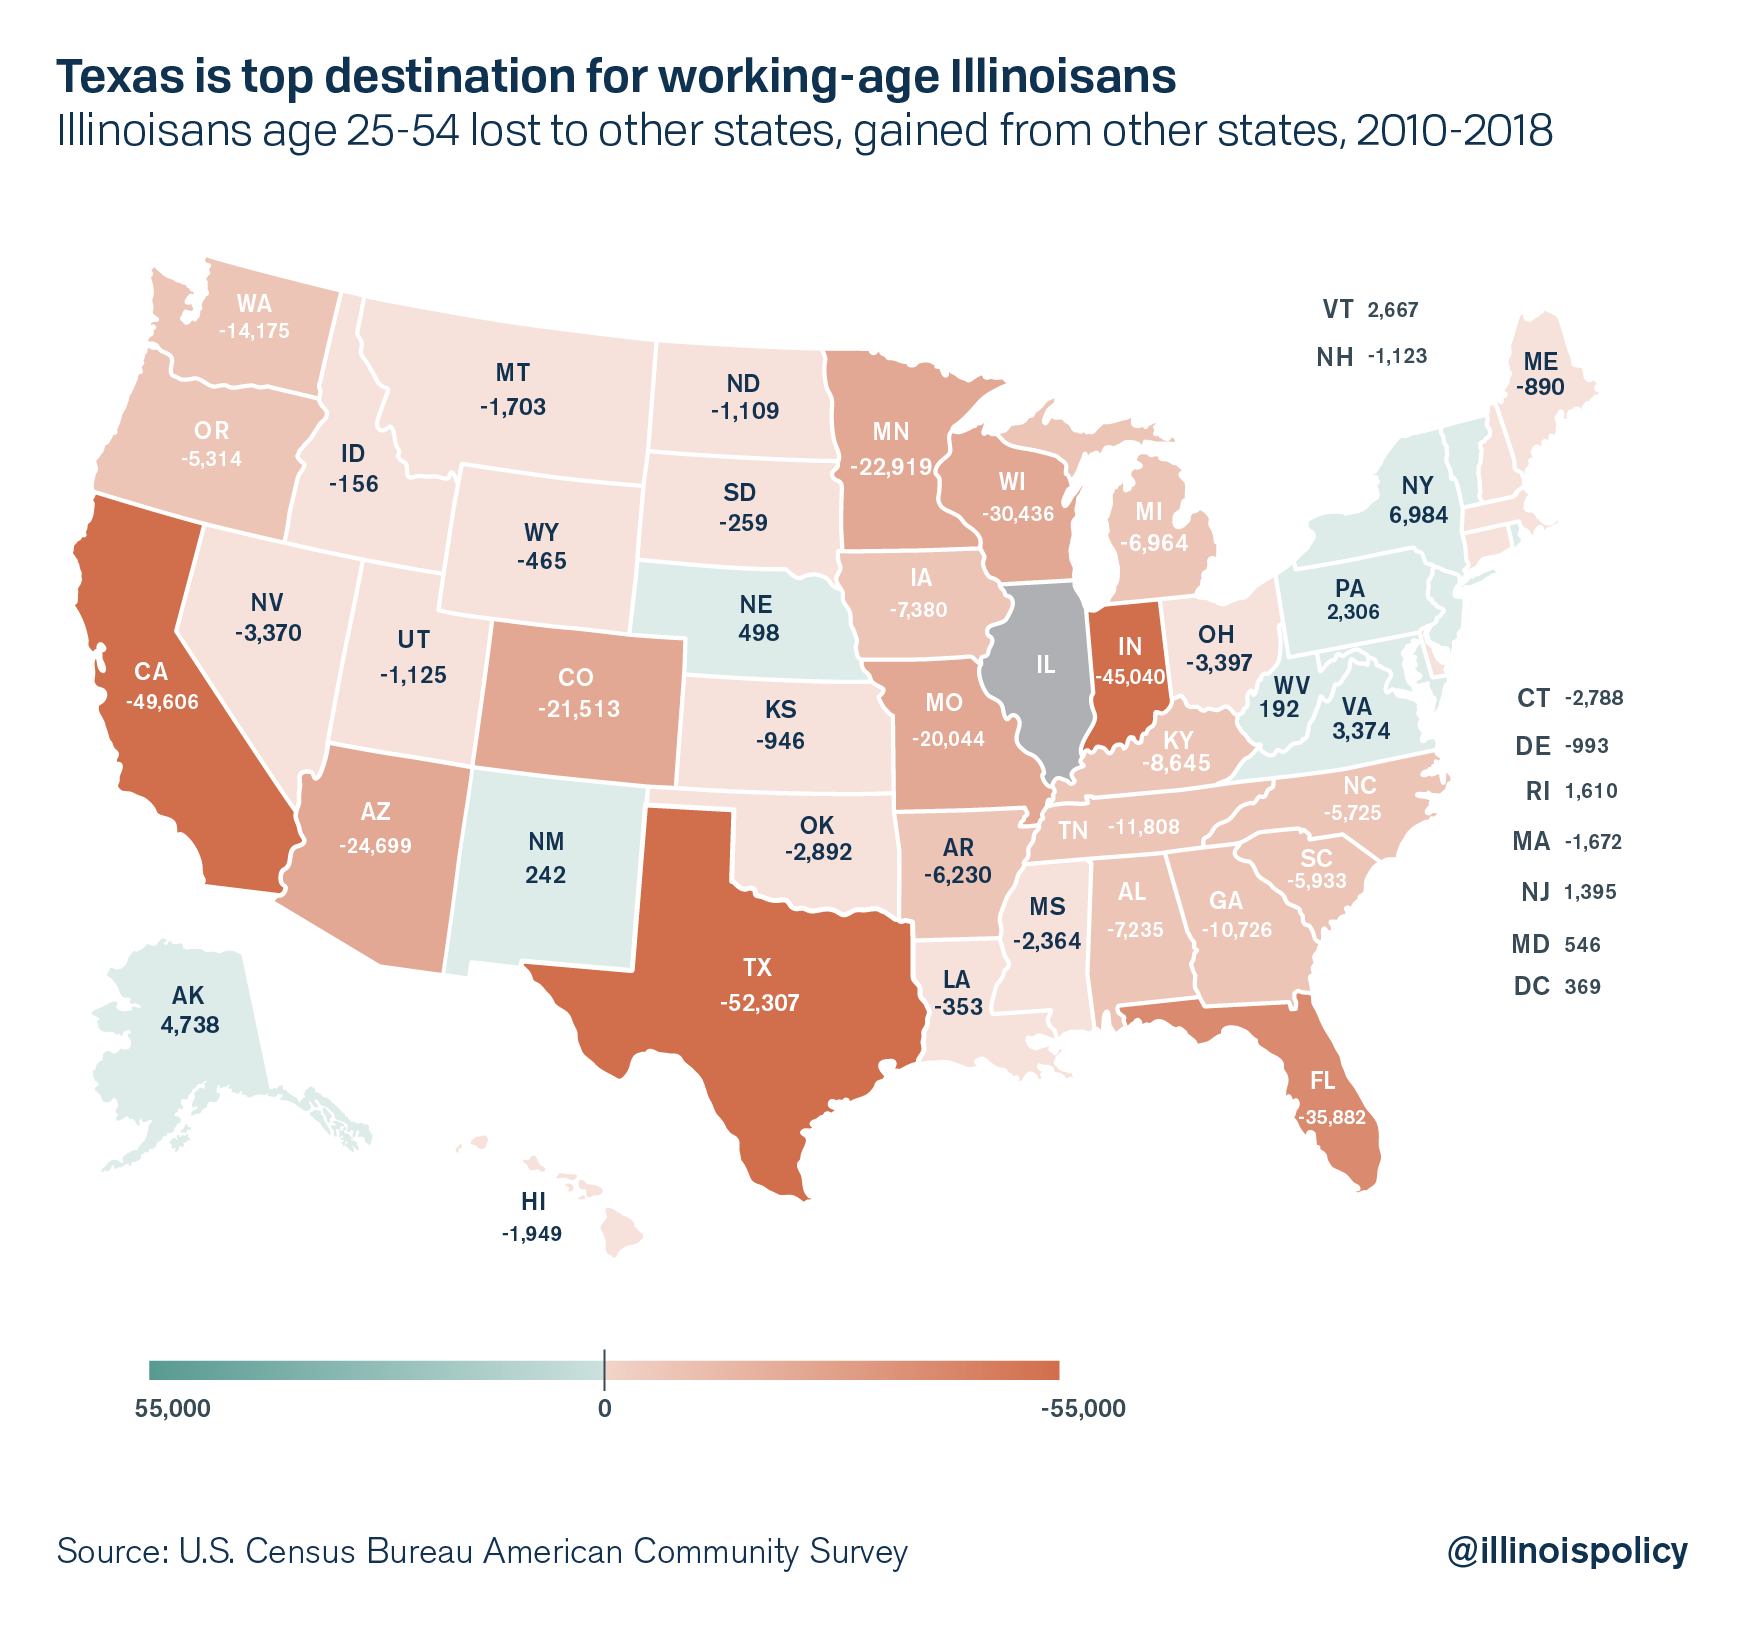 Texas is top destination for working-age Illinoisans